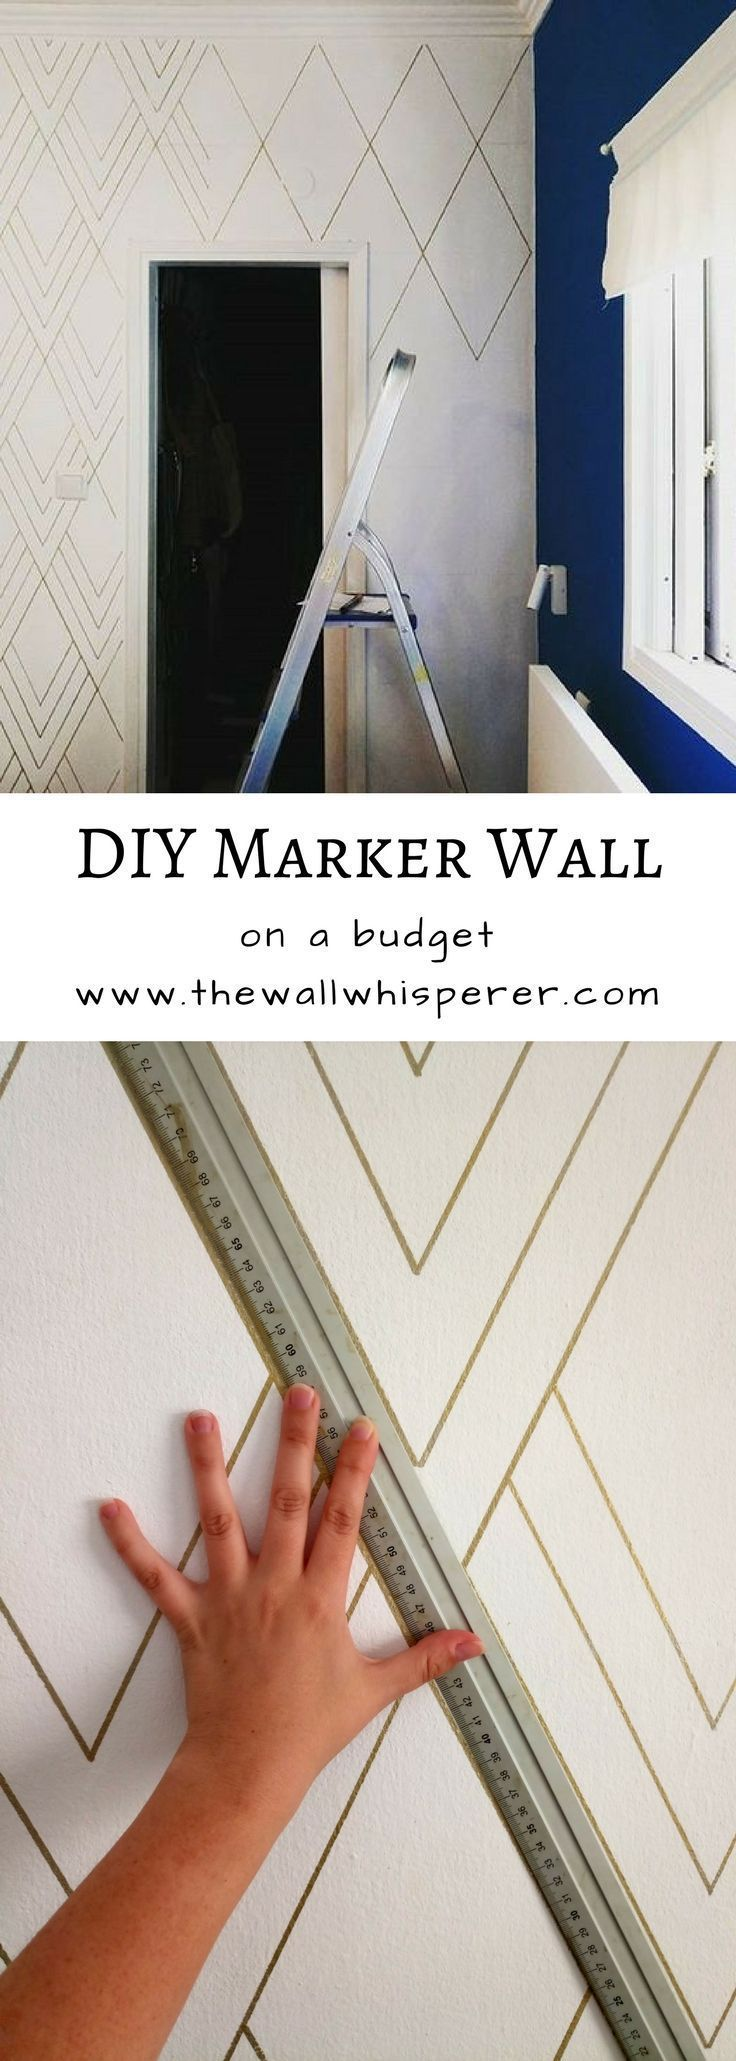 Ideas : DIY project tutorial. How to make a beautiful marker wall mural with a paint pen, or a sharpie pen. DIY Home Improvement On A Budget - Make simple projects - Easy and Cheap Do It Yourself Tutorials for updating, upgrading and renovating your house - Home Decor Tips and Tricks, Remodeling and Decorating Hacks - DIY Projects and Crafts by The Wall whisperer. #easydiyprojectsforthehome